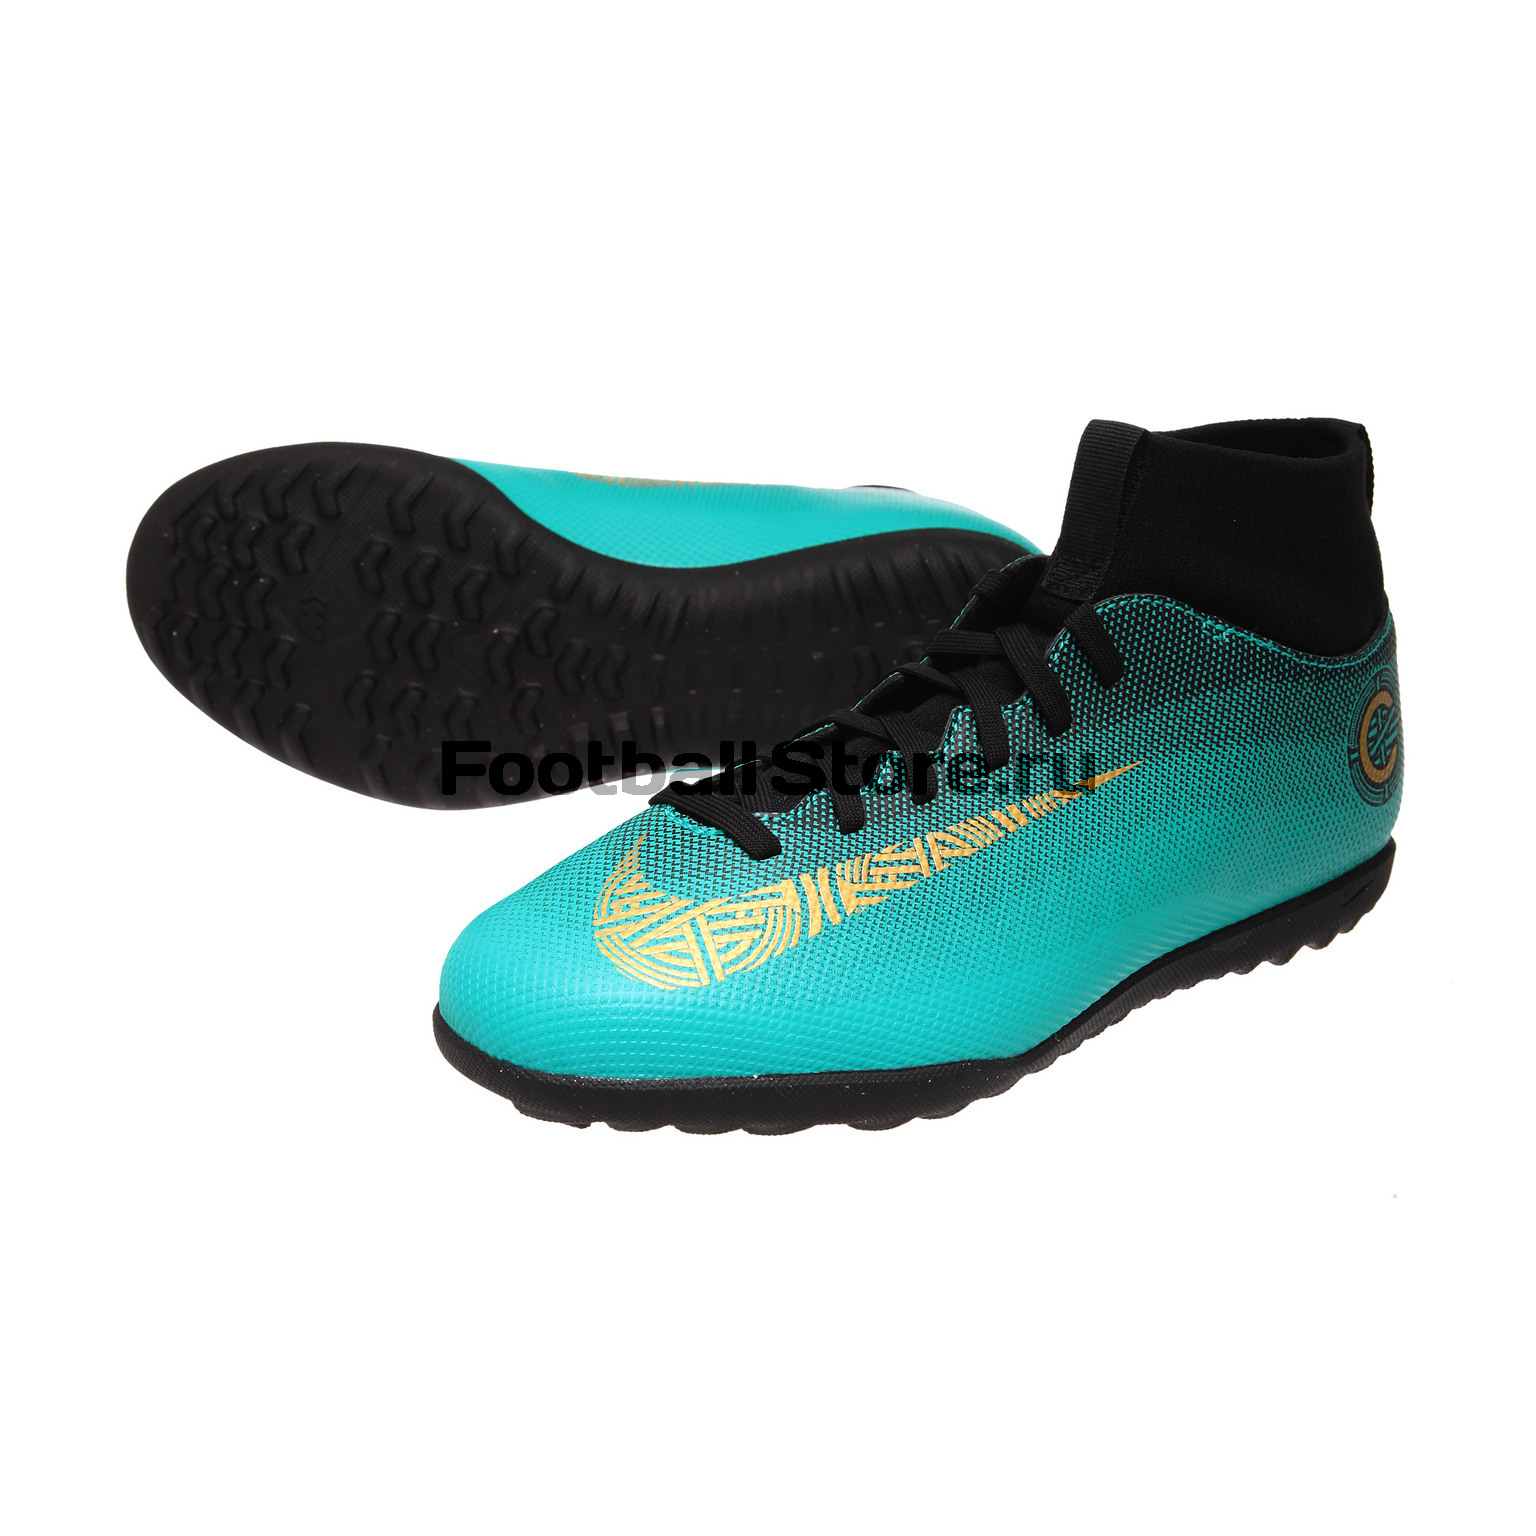 Шиповки Nike Superfly 6 Club CR7 JR TF AJ3088-390 шиповки nike шиповки nike hypervenomx proximo ii df tf 852576 801